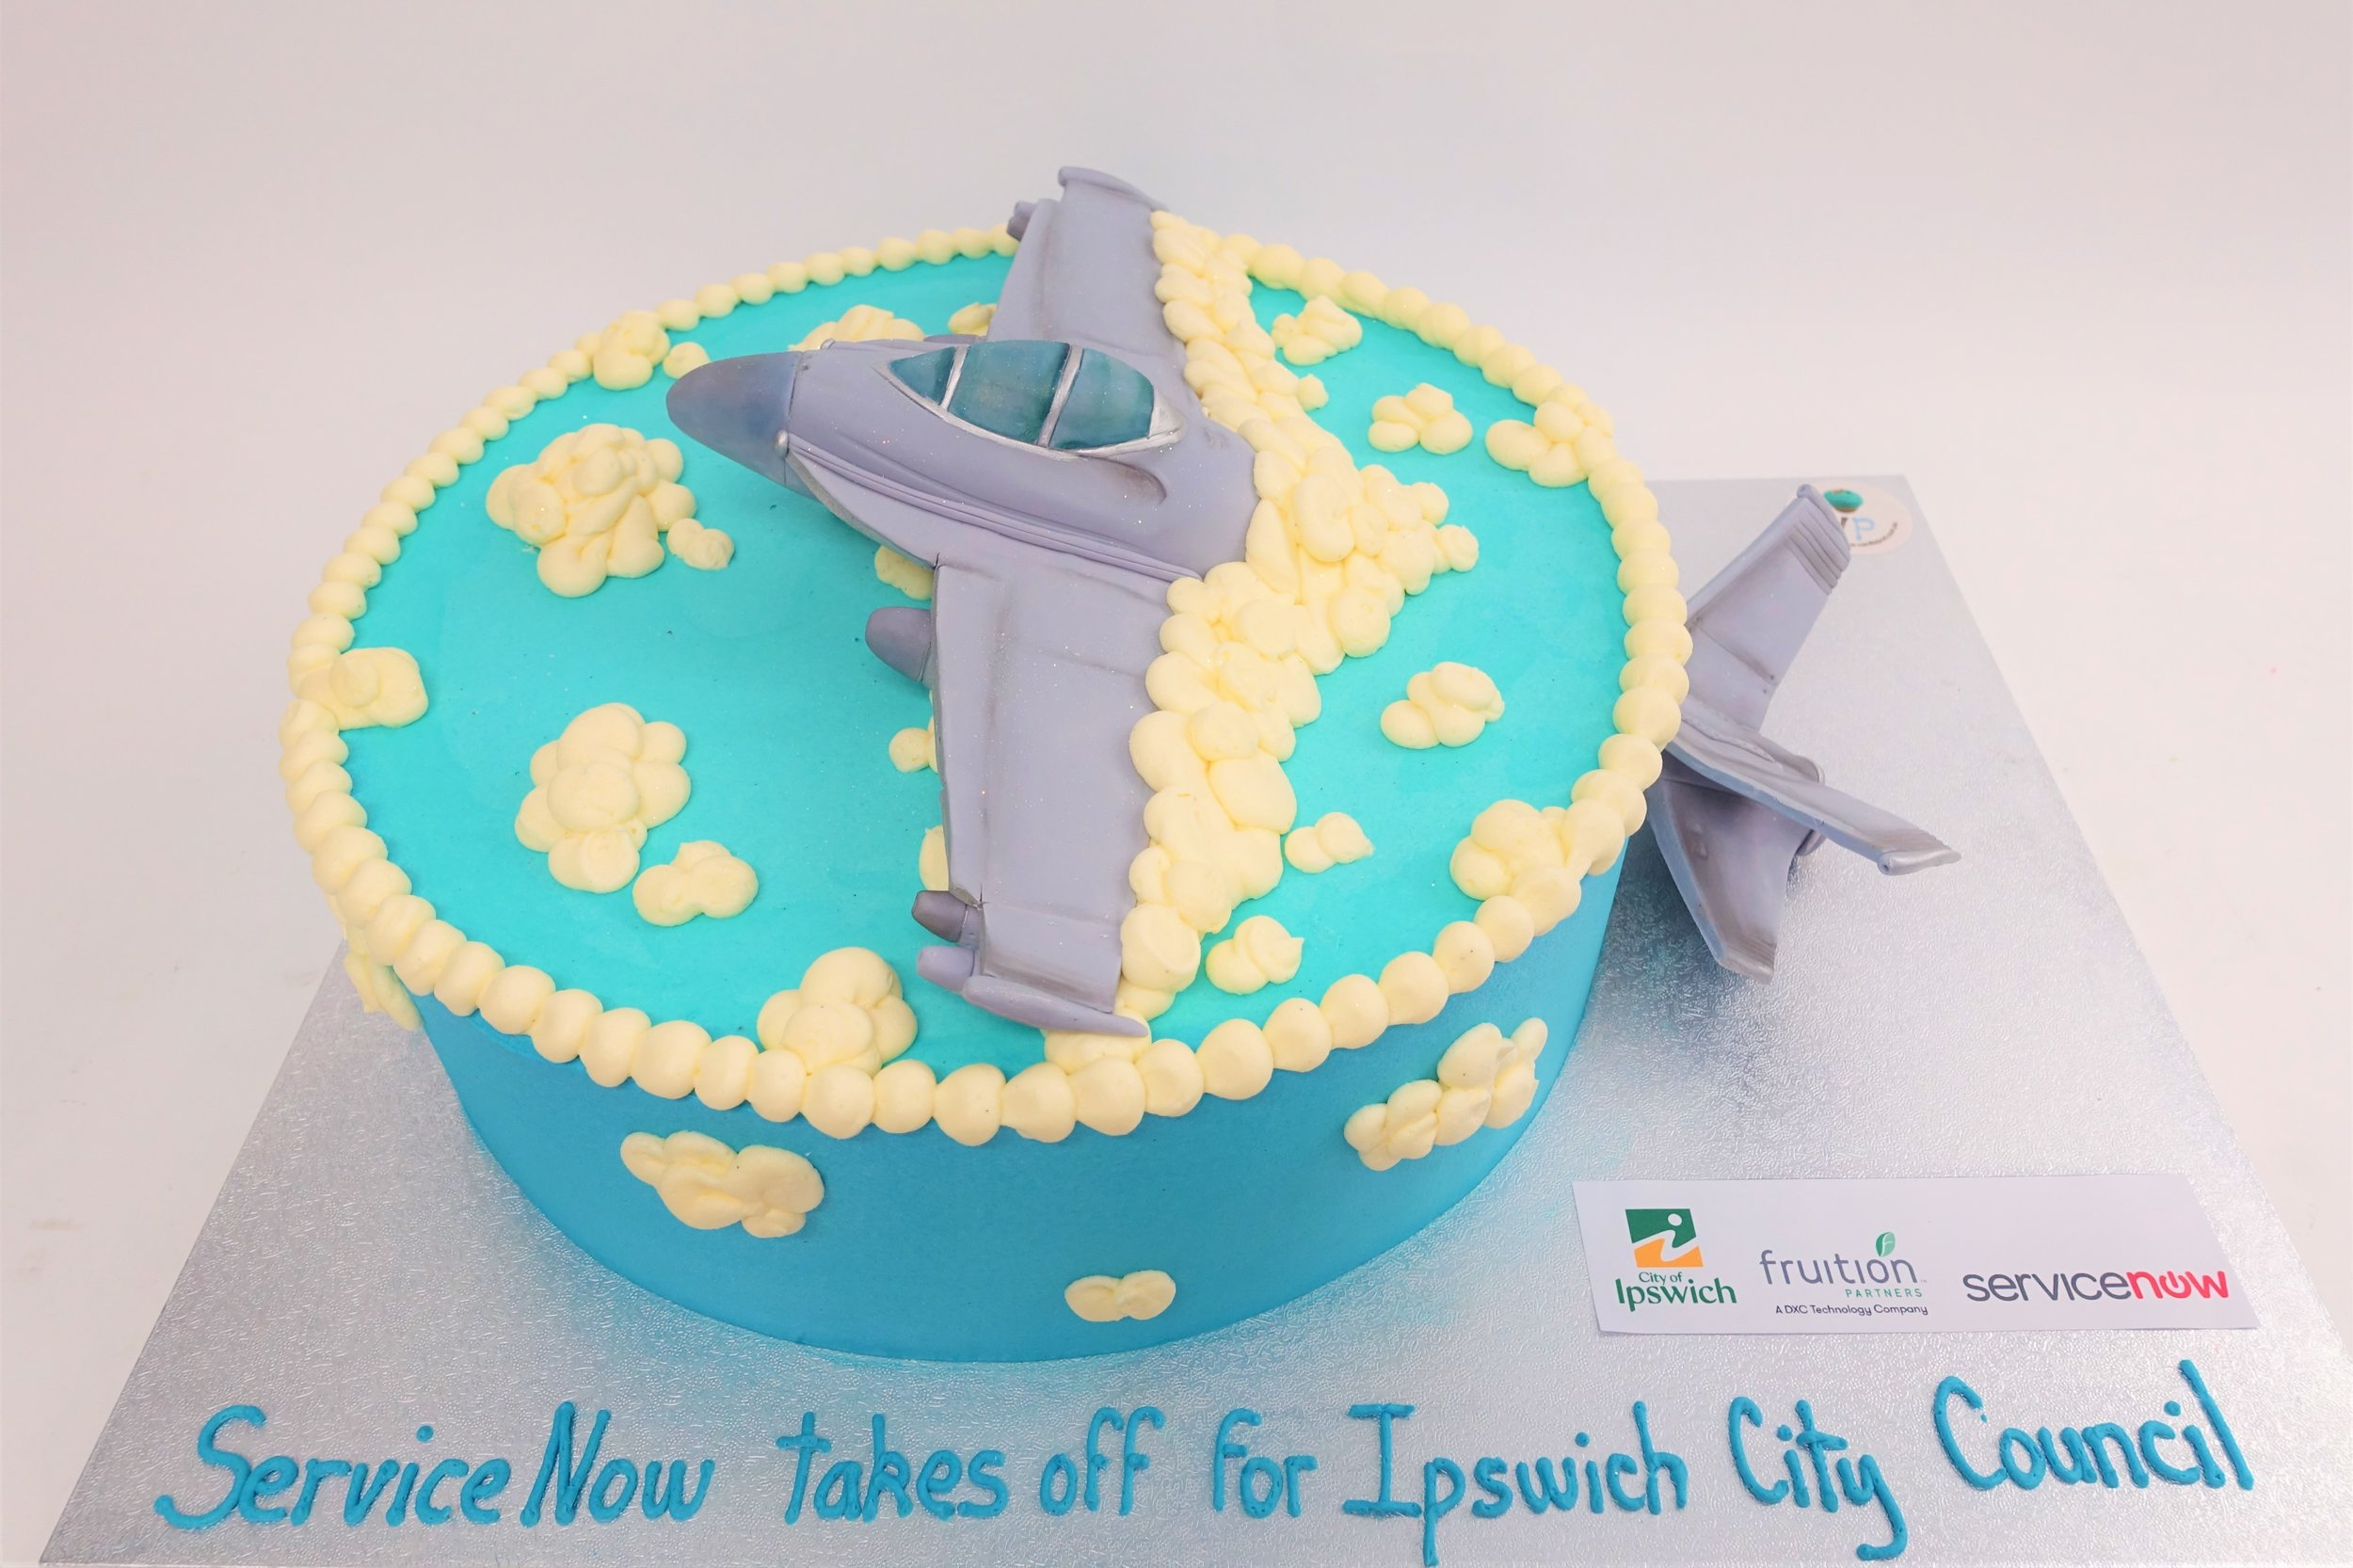 Service Now Take Flight for ipswich city council - red velvet (1).JPG